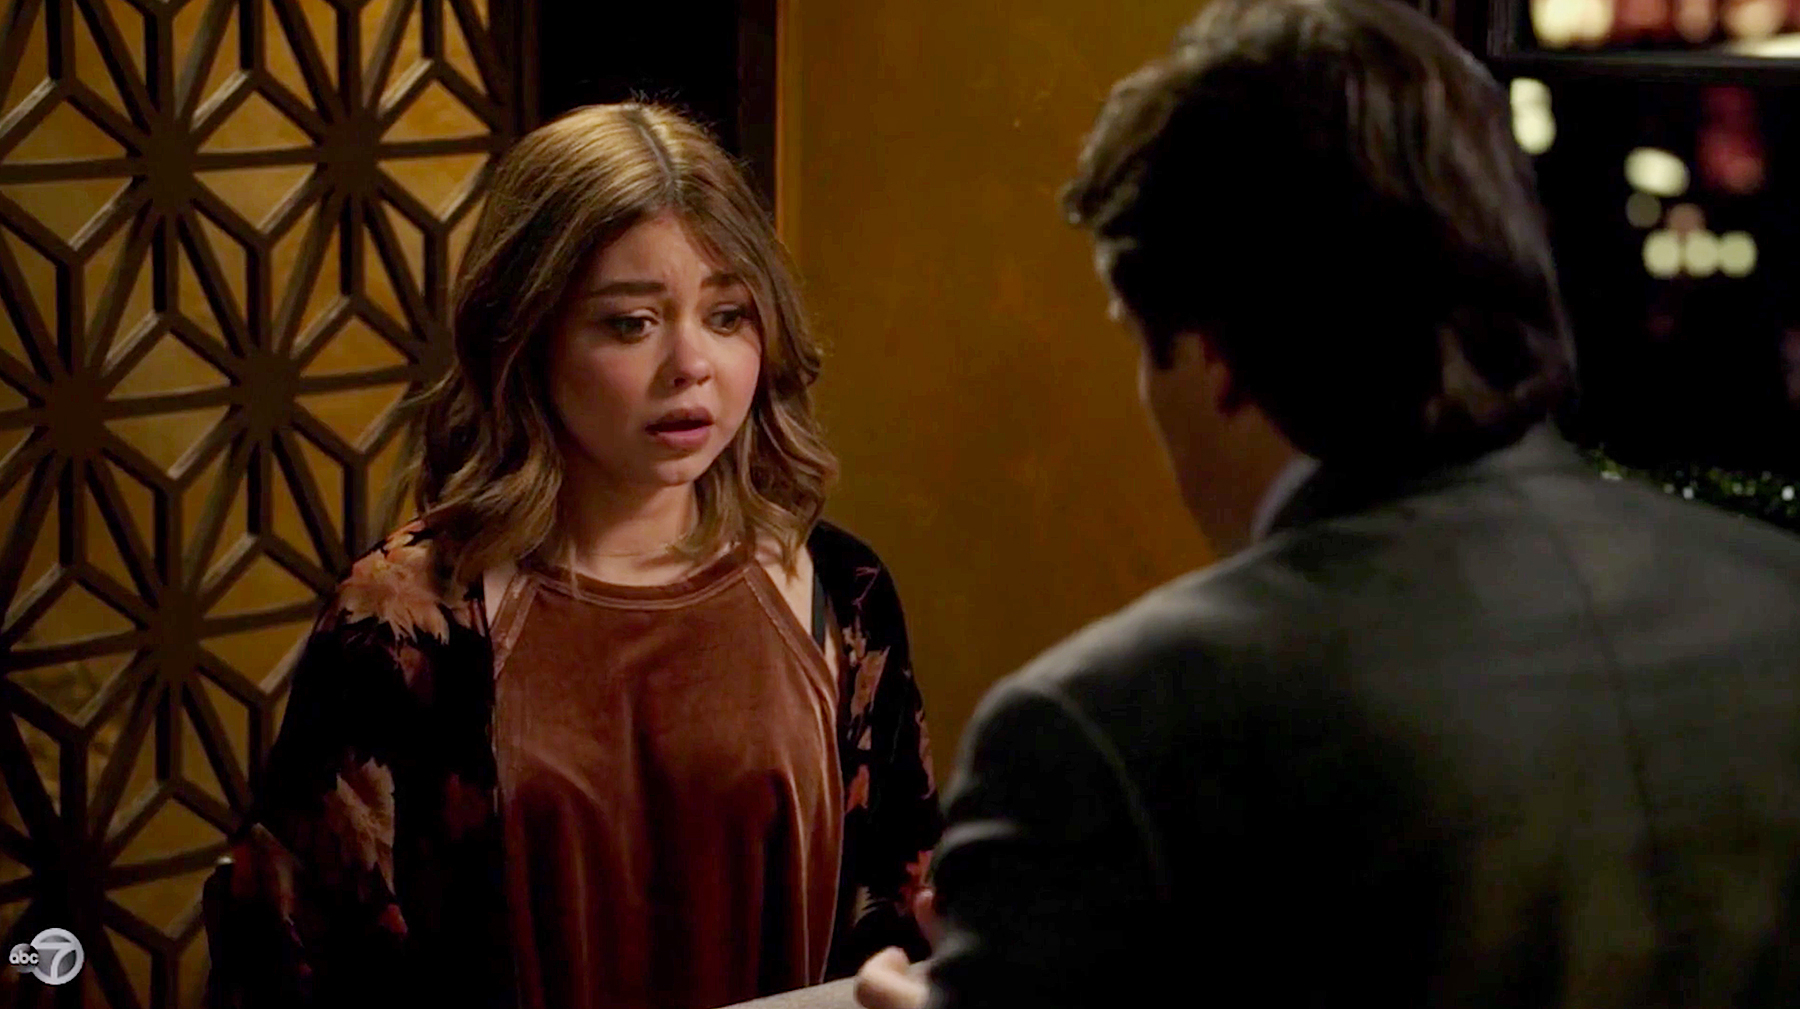 Sarah Hyland Haley Dunphy Nathan Fillion Rainer Shine Modern Family